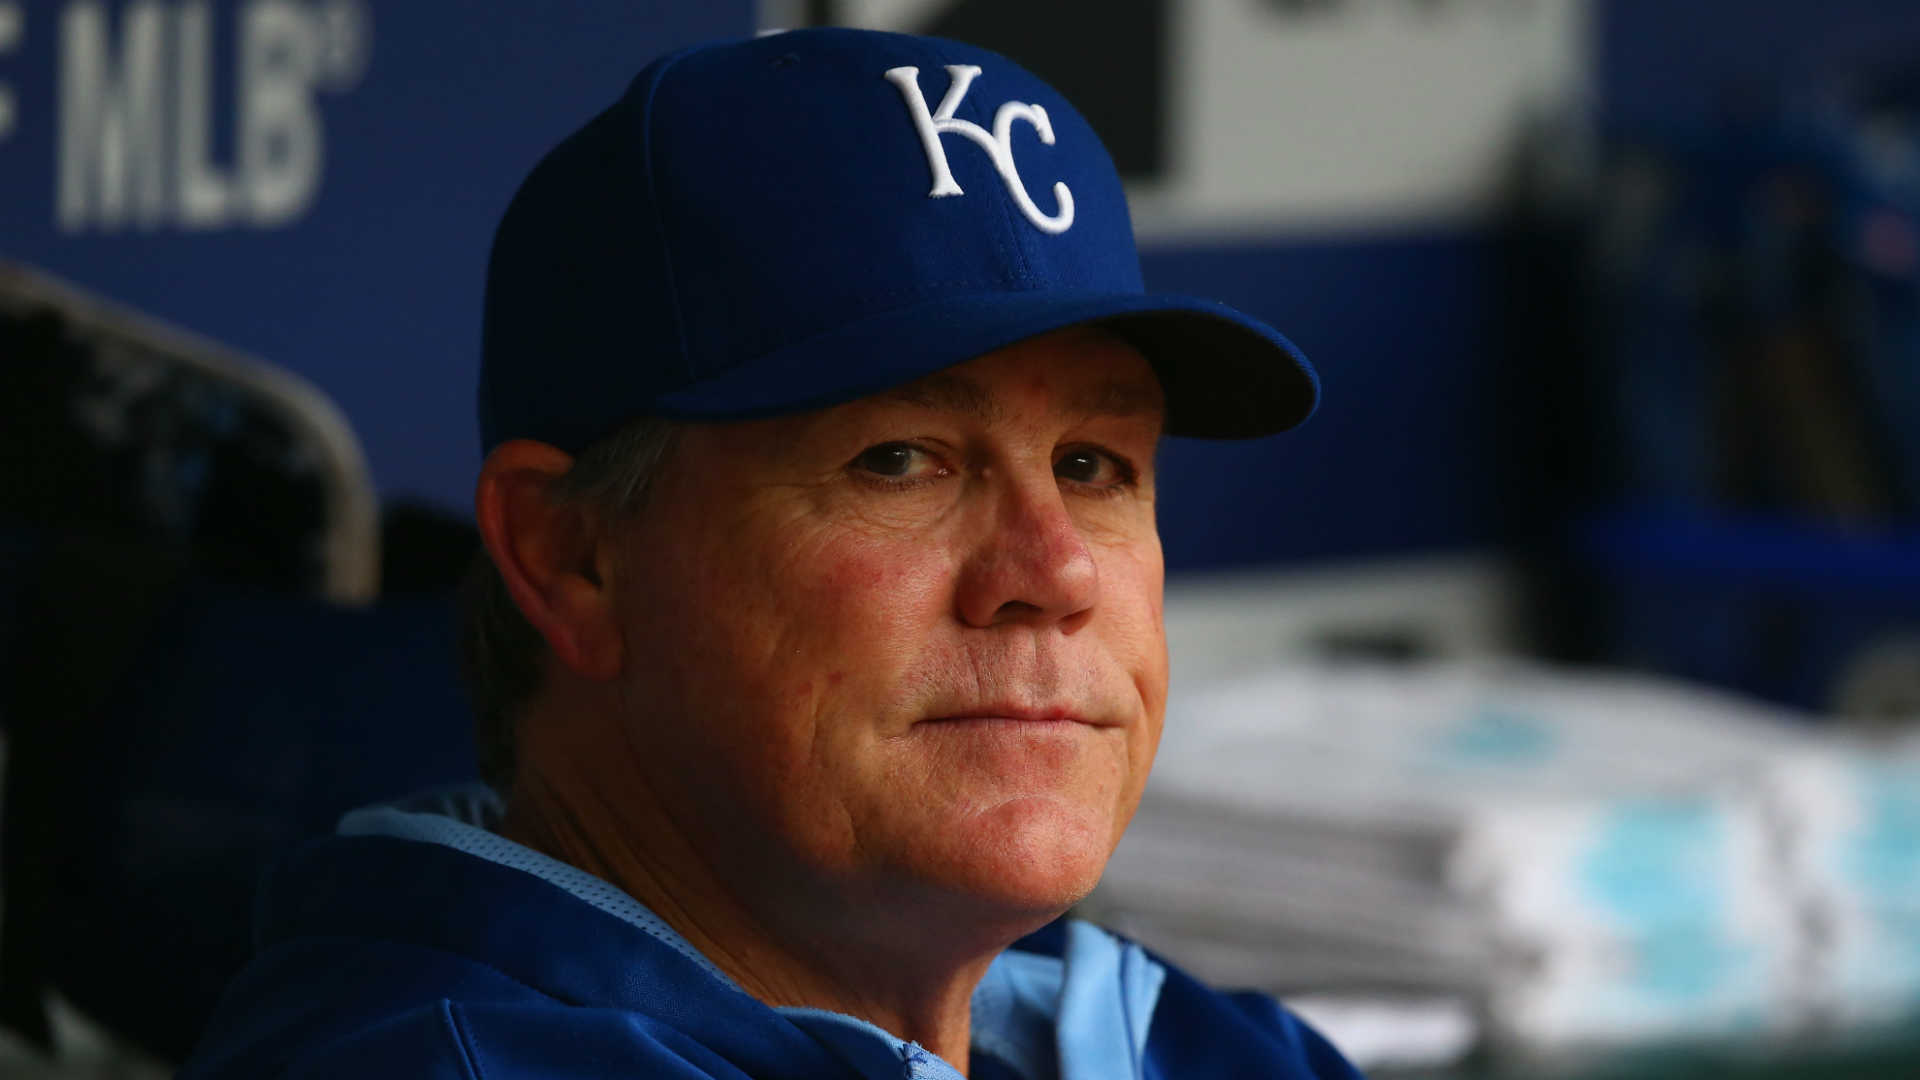 wheel chair in karachi hello kitty ned yost says deer-stand accident could have killed him